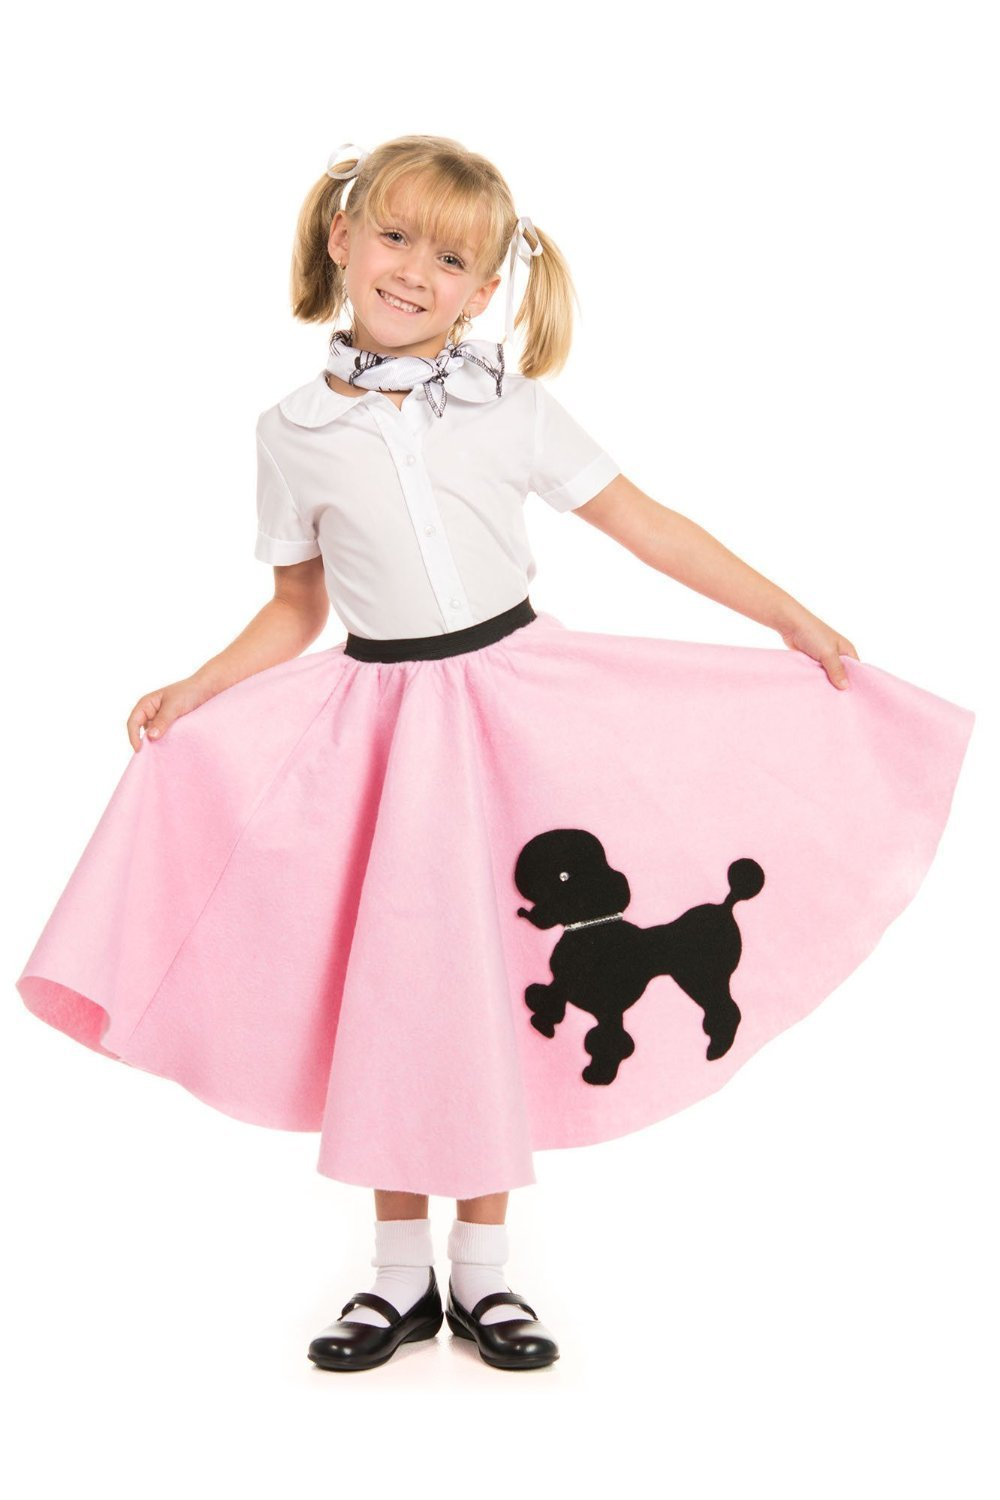 Vintage Style Children's Clothing: Girls, Boys, Baby, Toddler Poodle Skirt with Musical Note printed Scarf by Kidcostumes $14.98 AT vintagedancer.com